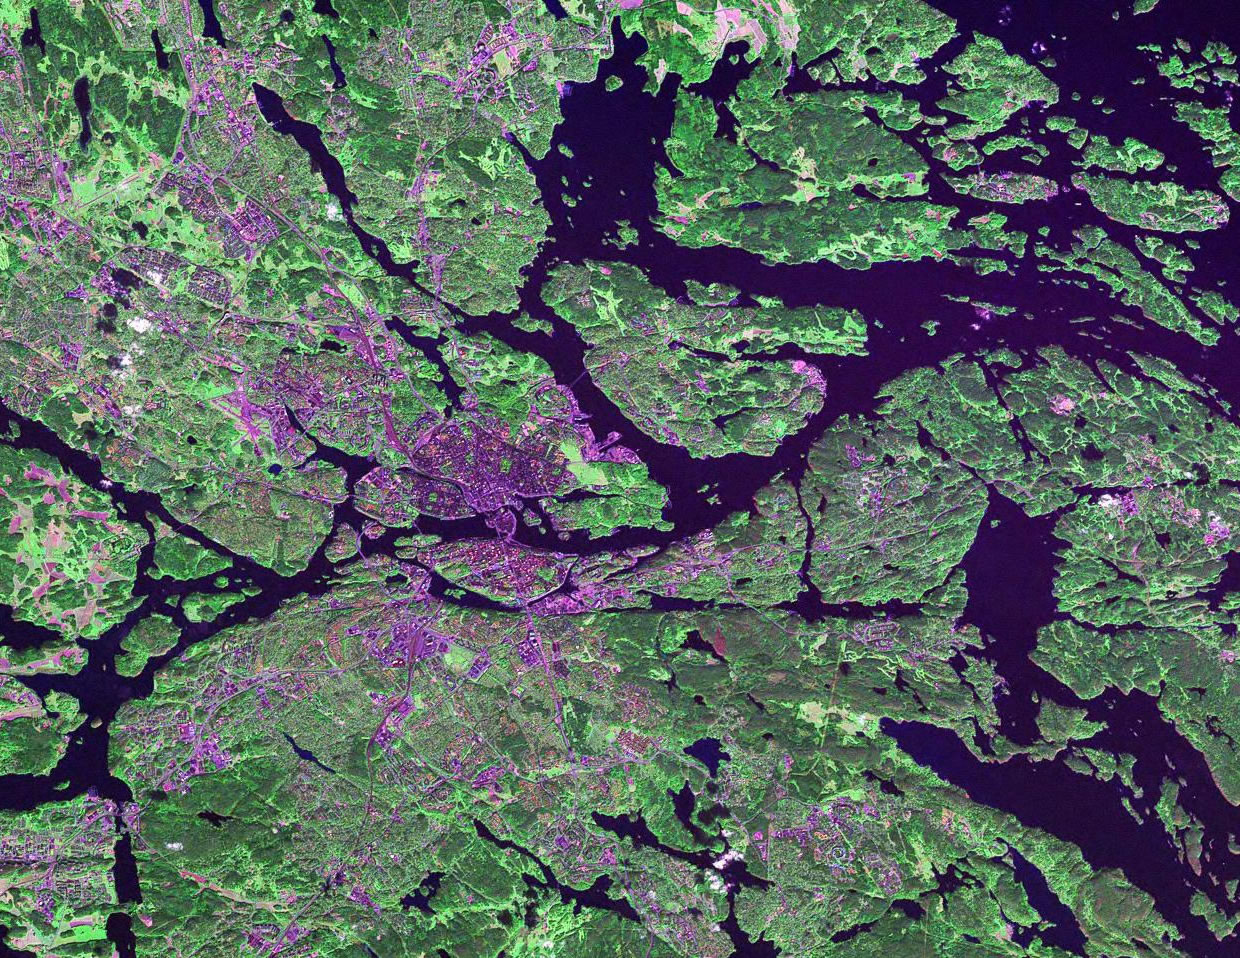 Stockholm Sweden satellite image map